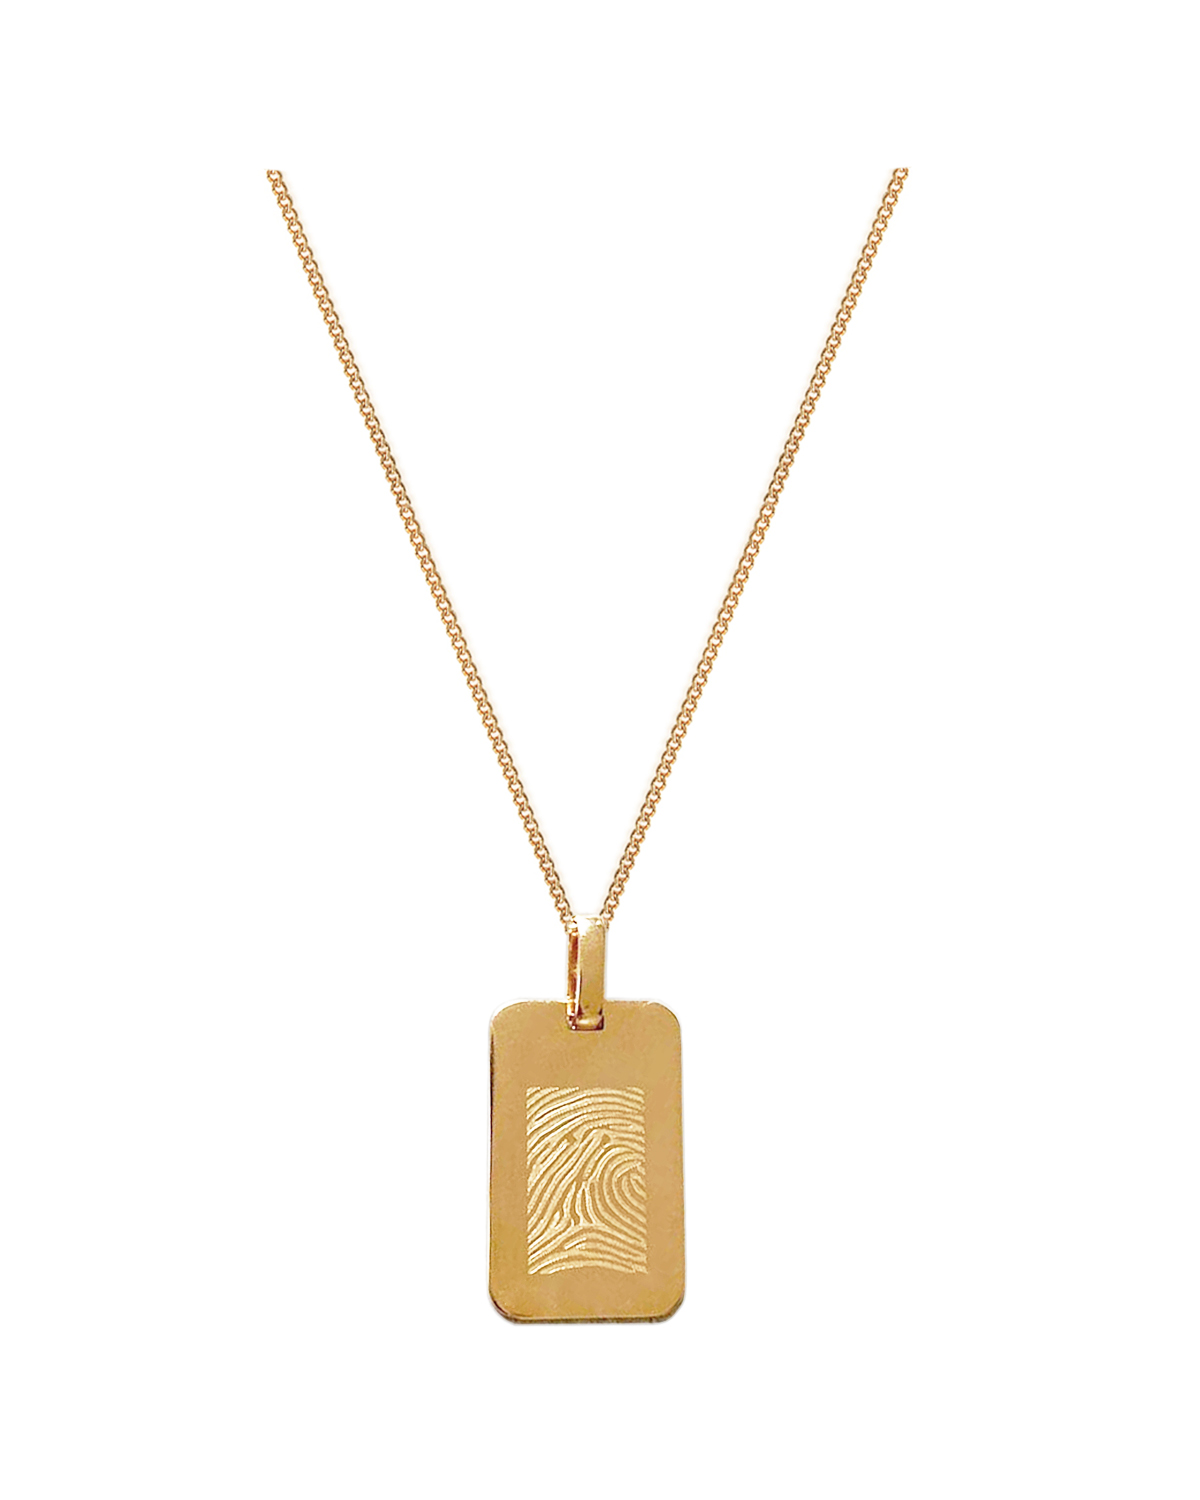 Tag Charm Necklace, Gold-Plated